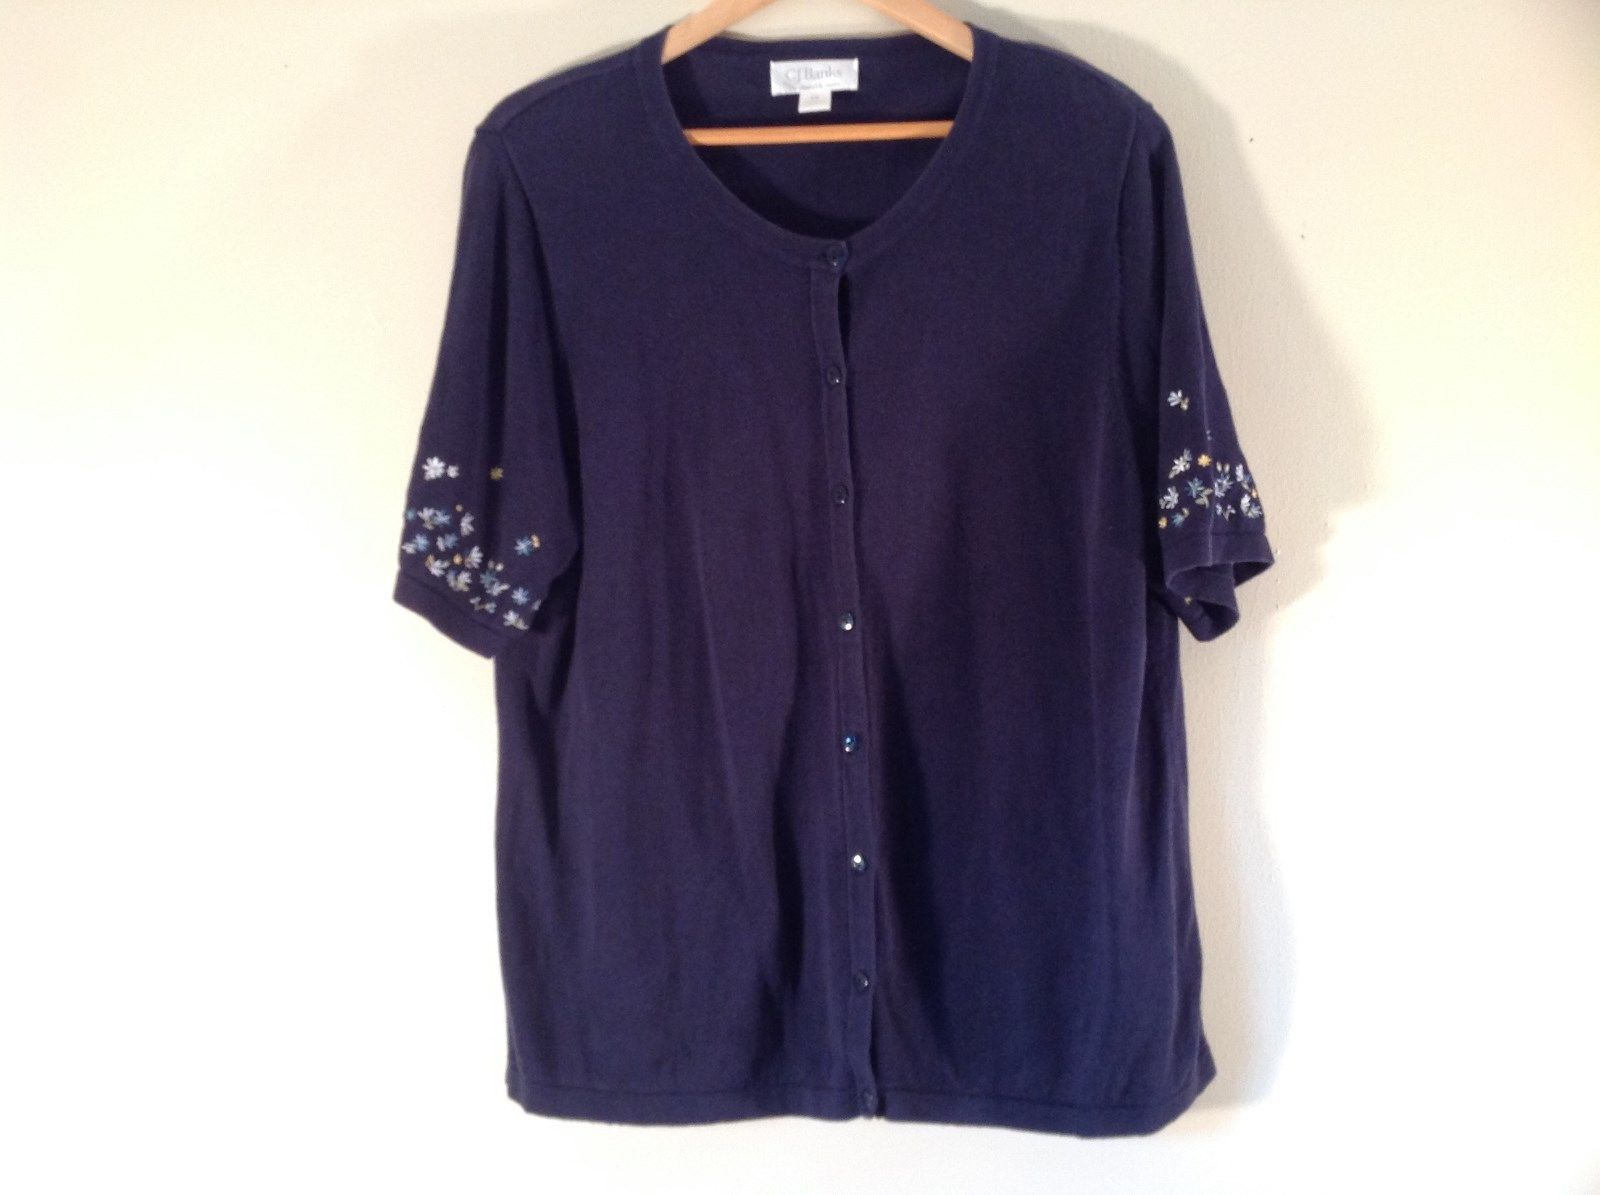 Very Nice Short Sleeve Navy with Flowers Button Up Sweater Size 1X C J Banks